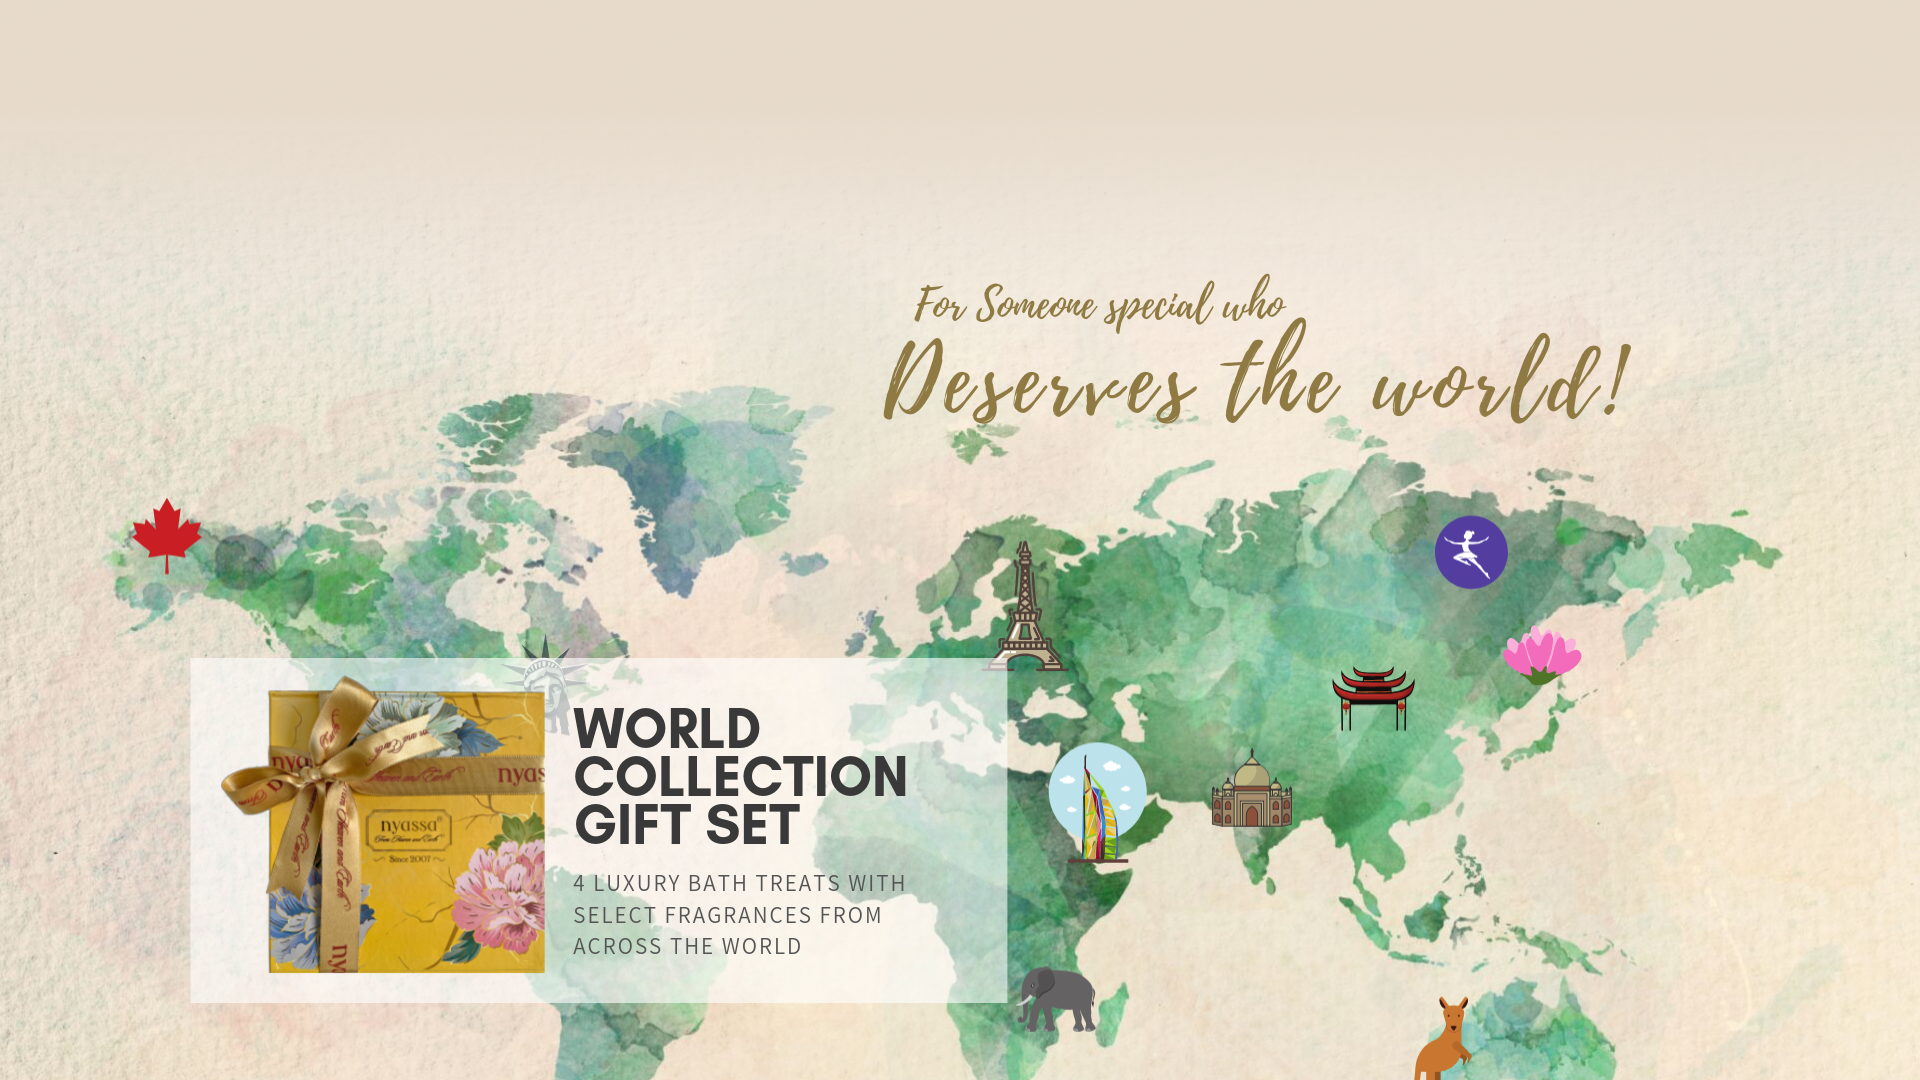 World Collection Gift Set